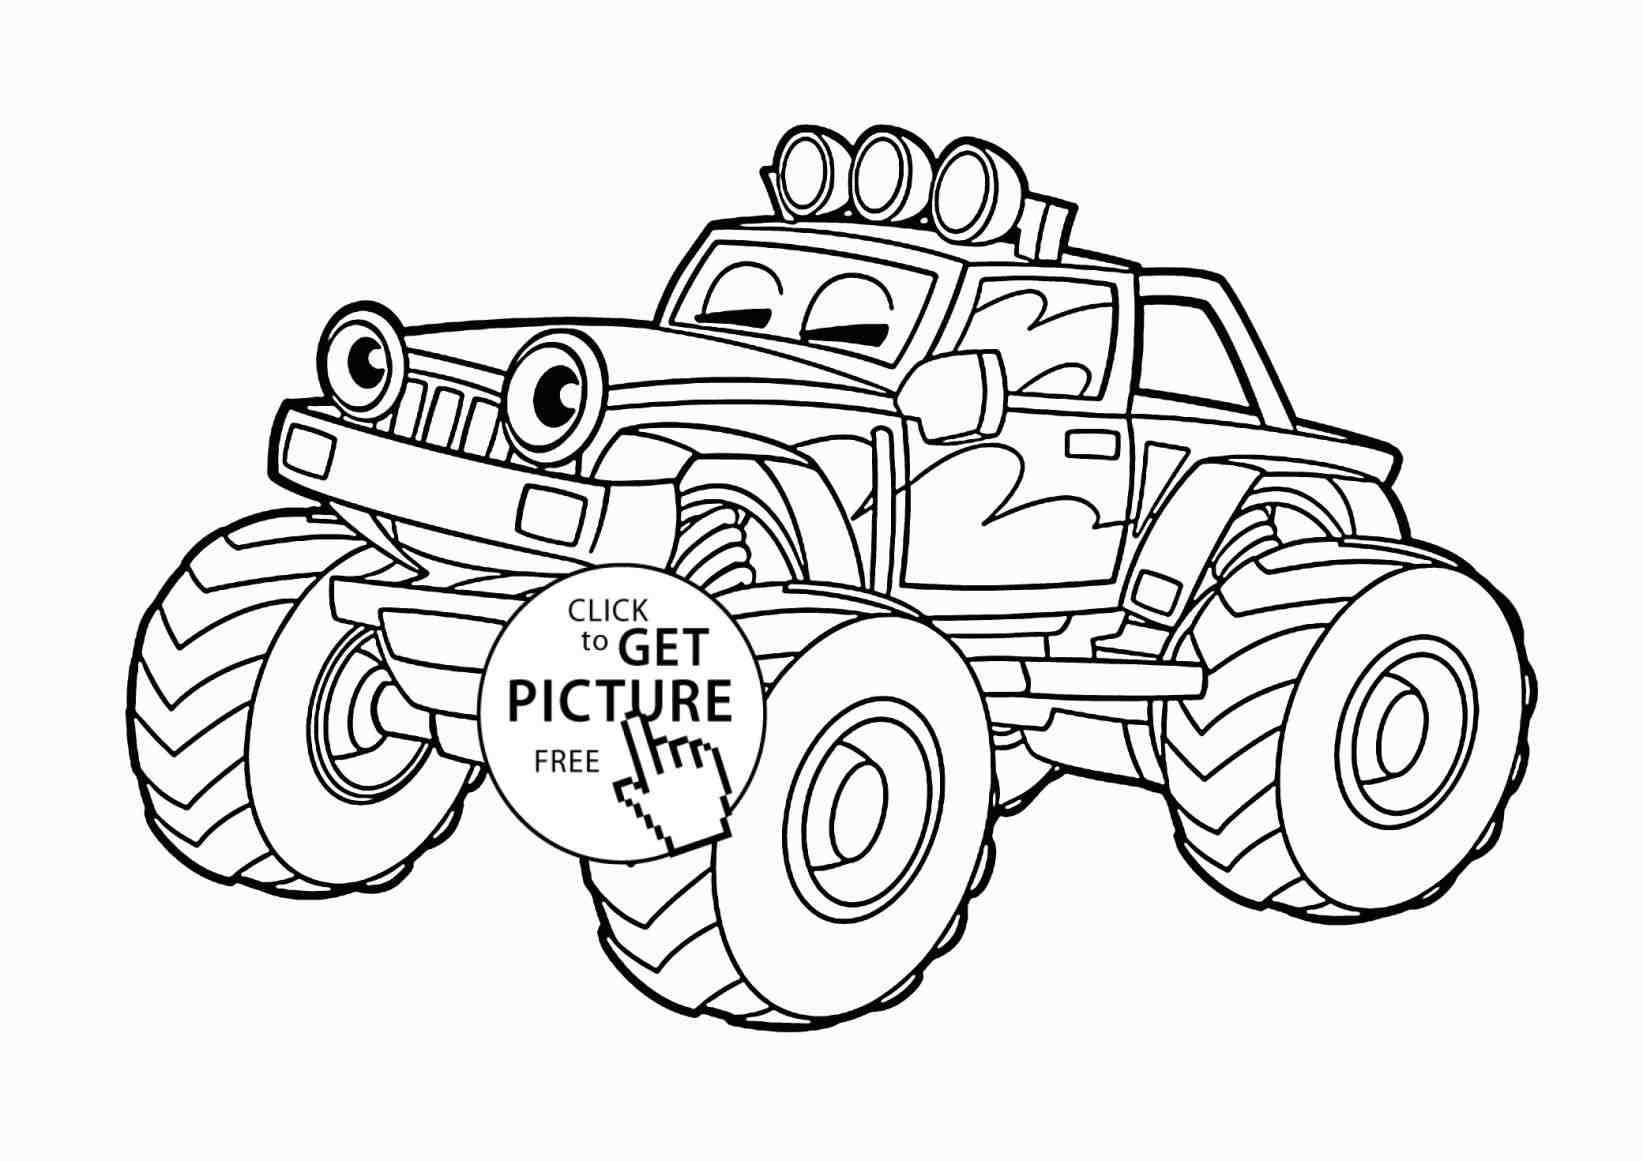 The Best Free Lifted Coloring Page Images Download From 24 Free Coloring Pages Of Lifted At